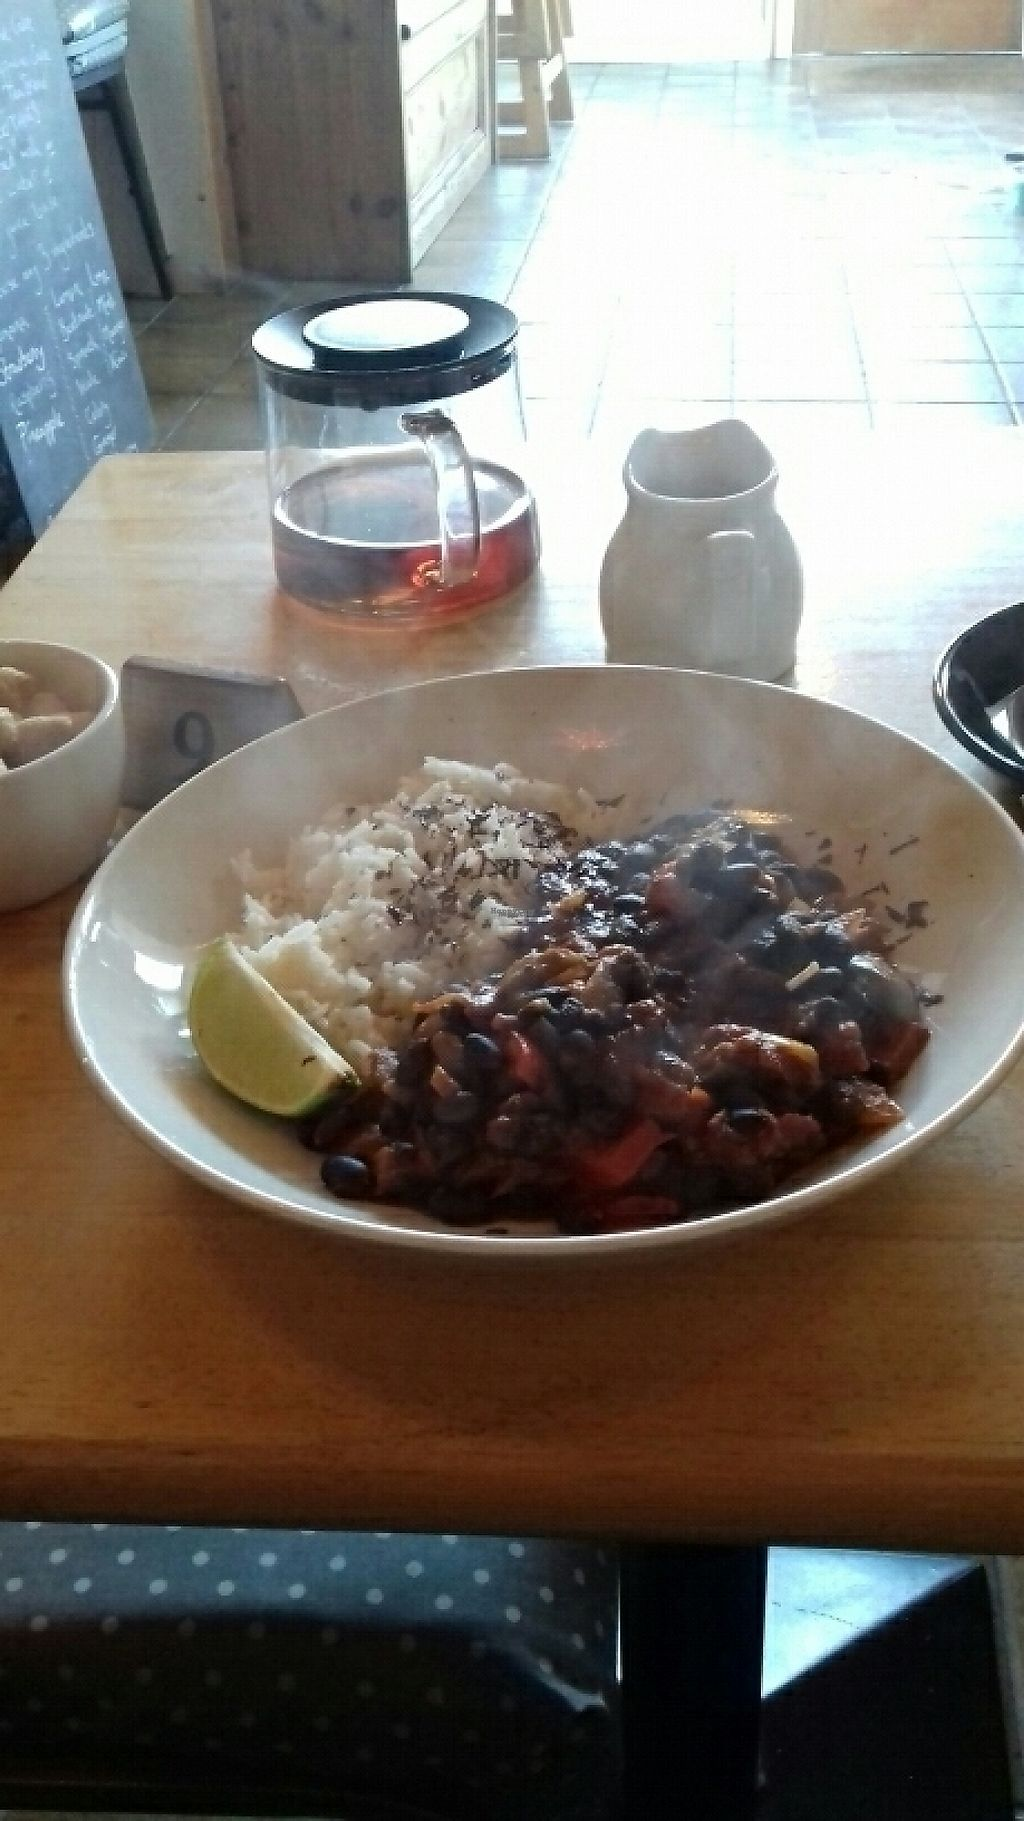 """Photo of Kat's Kitchen  by <a href=""""/members/profile/AidanBrierley"""">AidanBrierley</a> <br/>inside a friendly and tasty cafe <br/> December 28, 2016  - <a href='/contact/abuse/image/79734/205728'>Report</a>"""